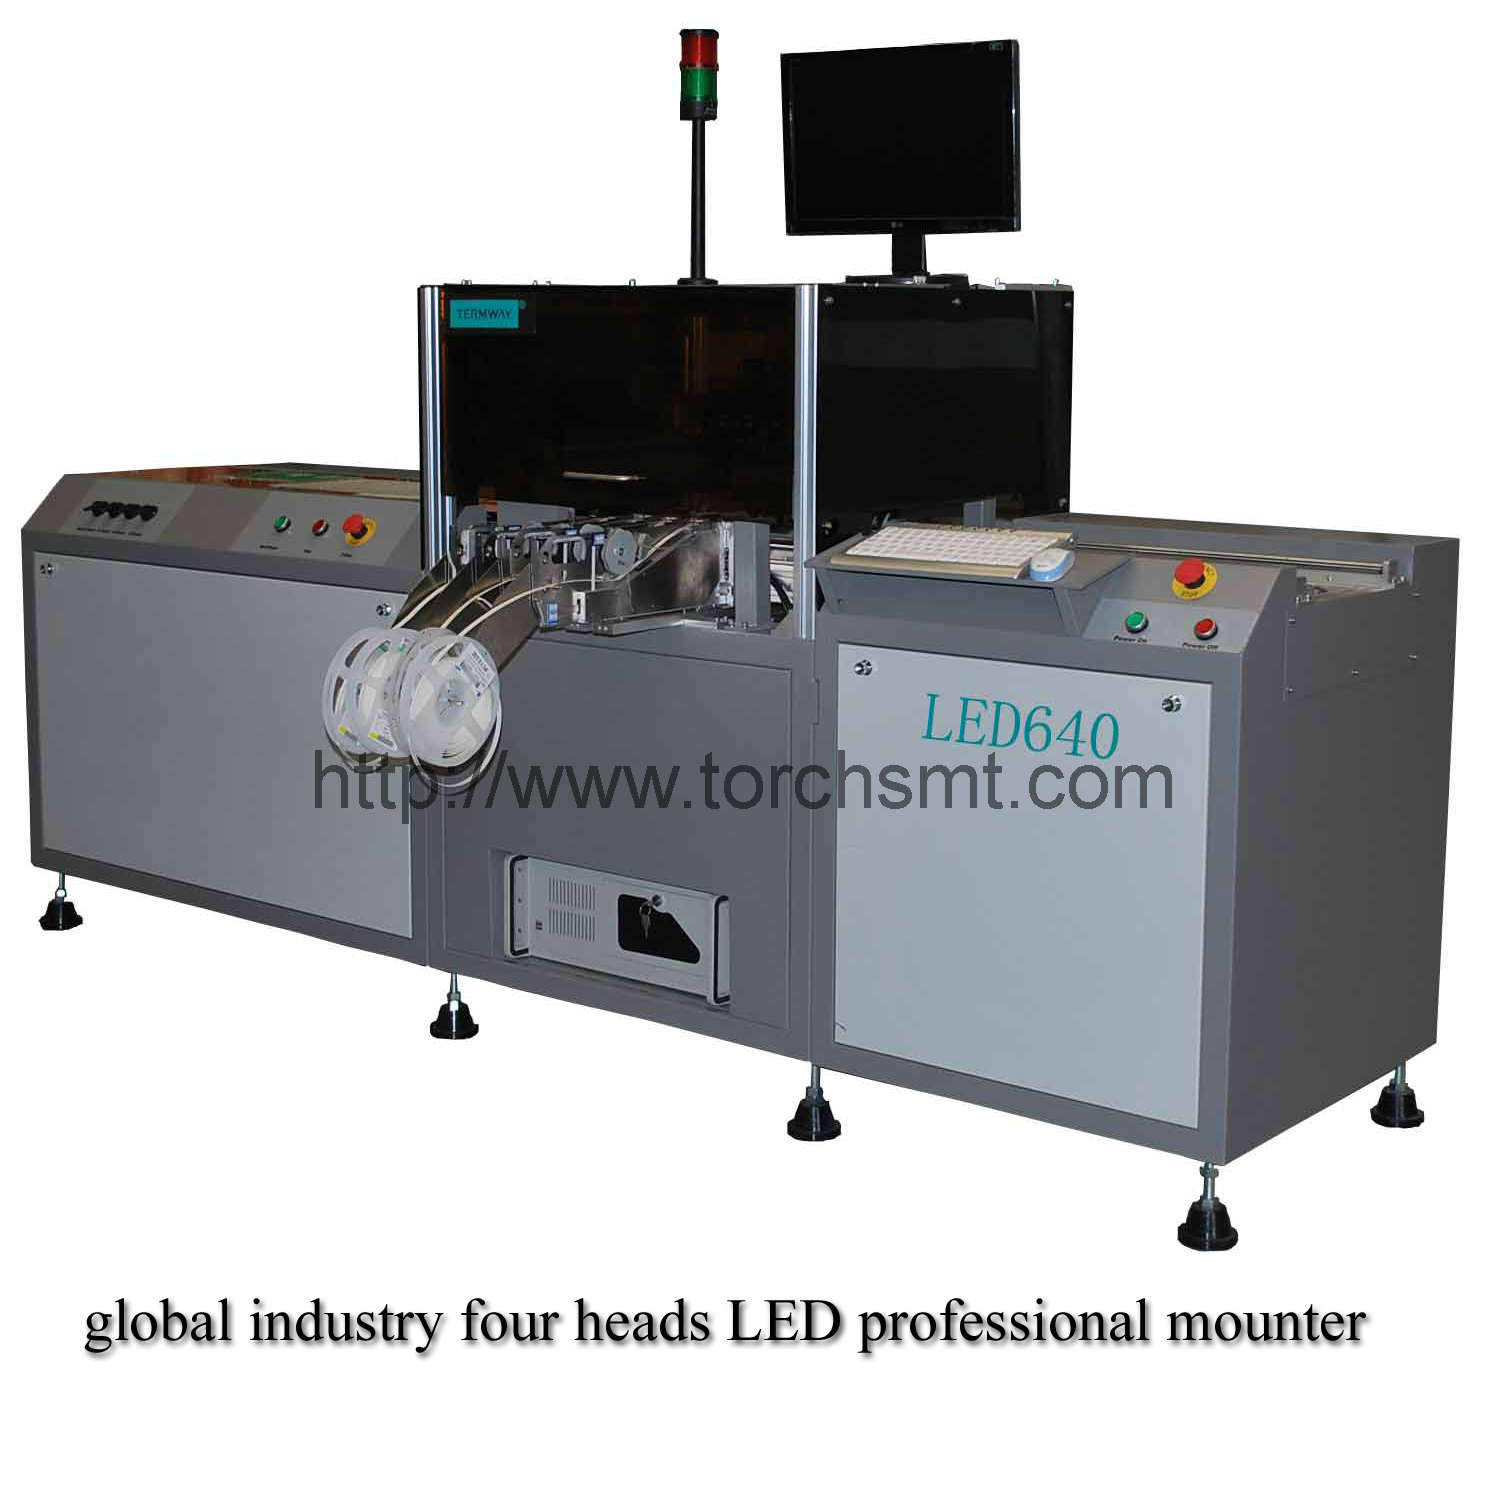 LED Automatic Chip Mounter Model: LED640